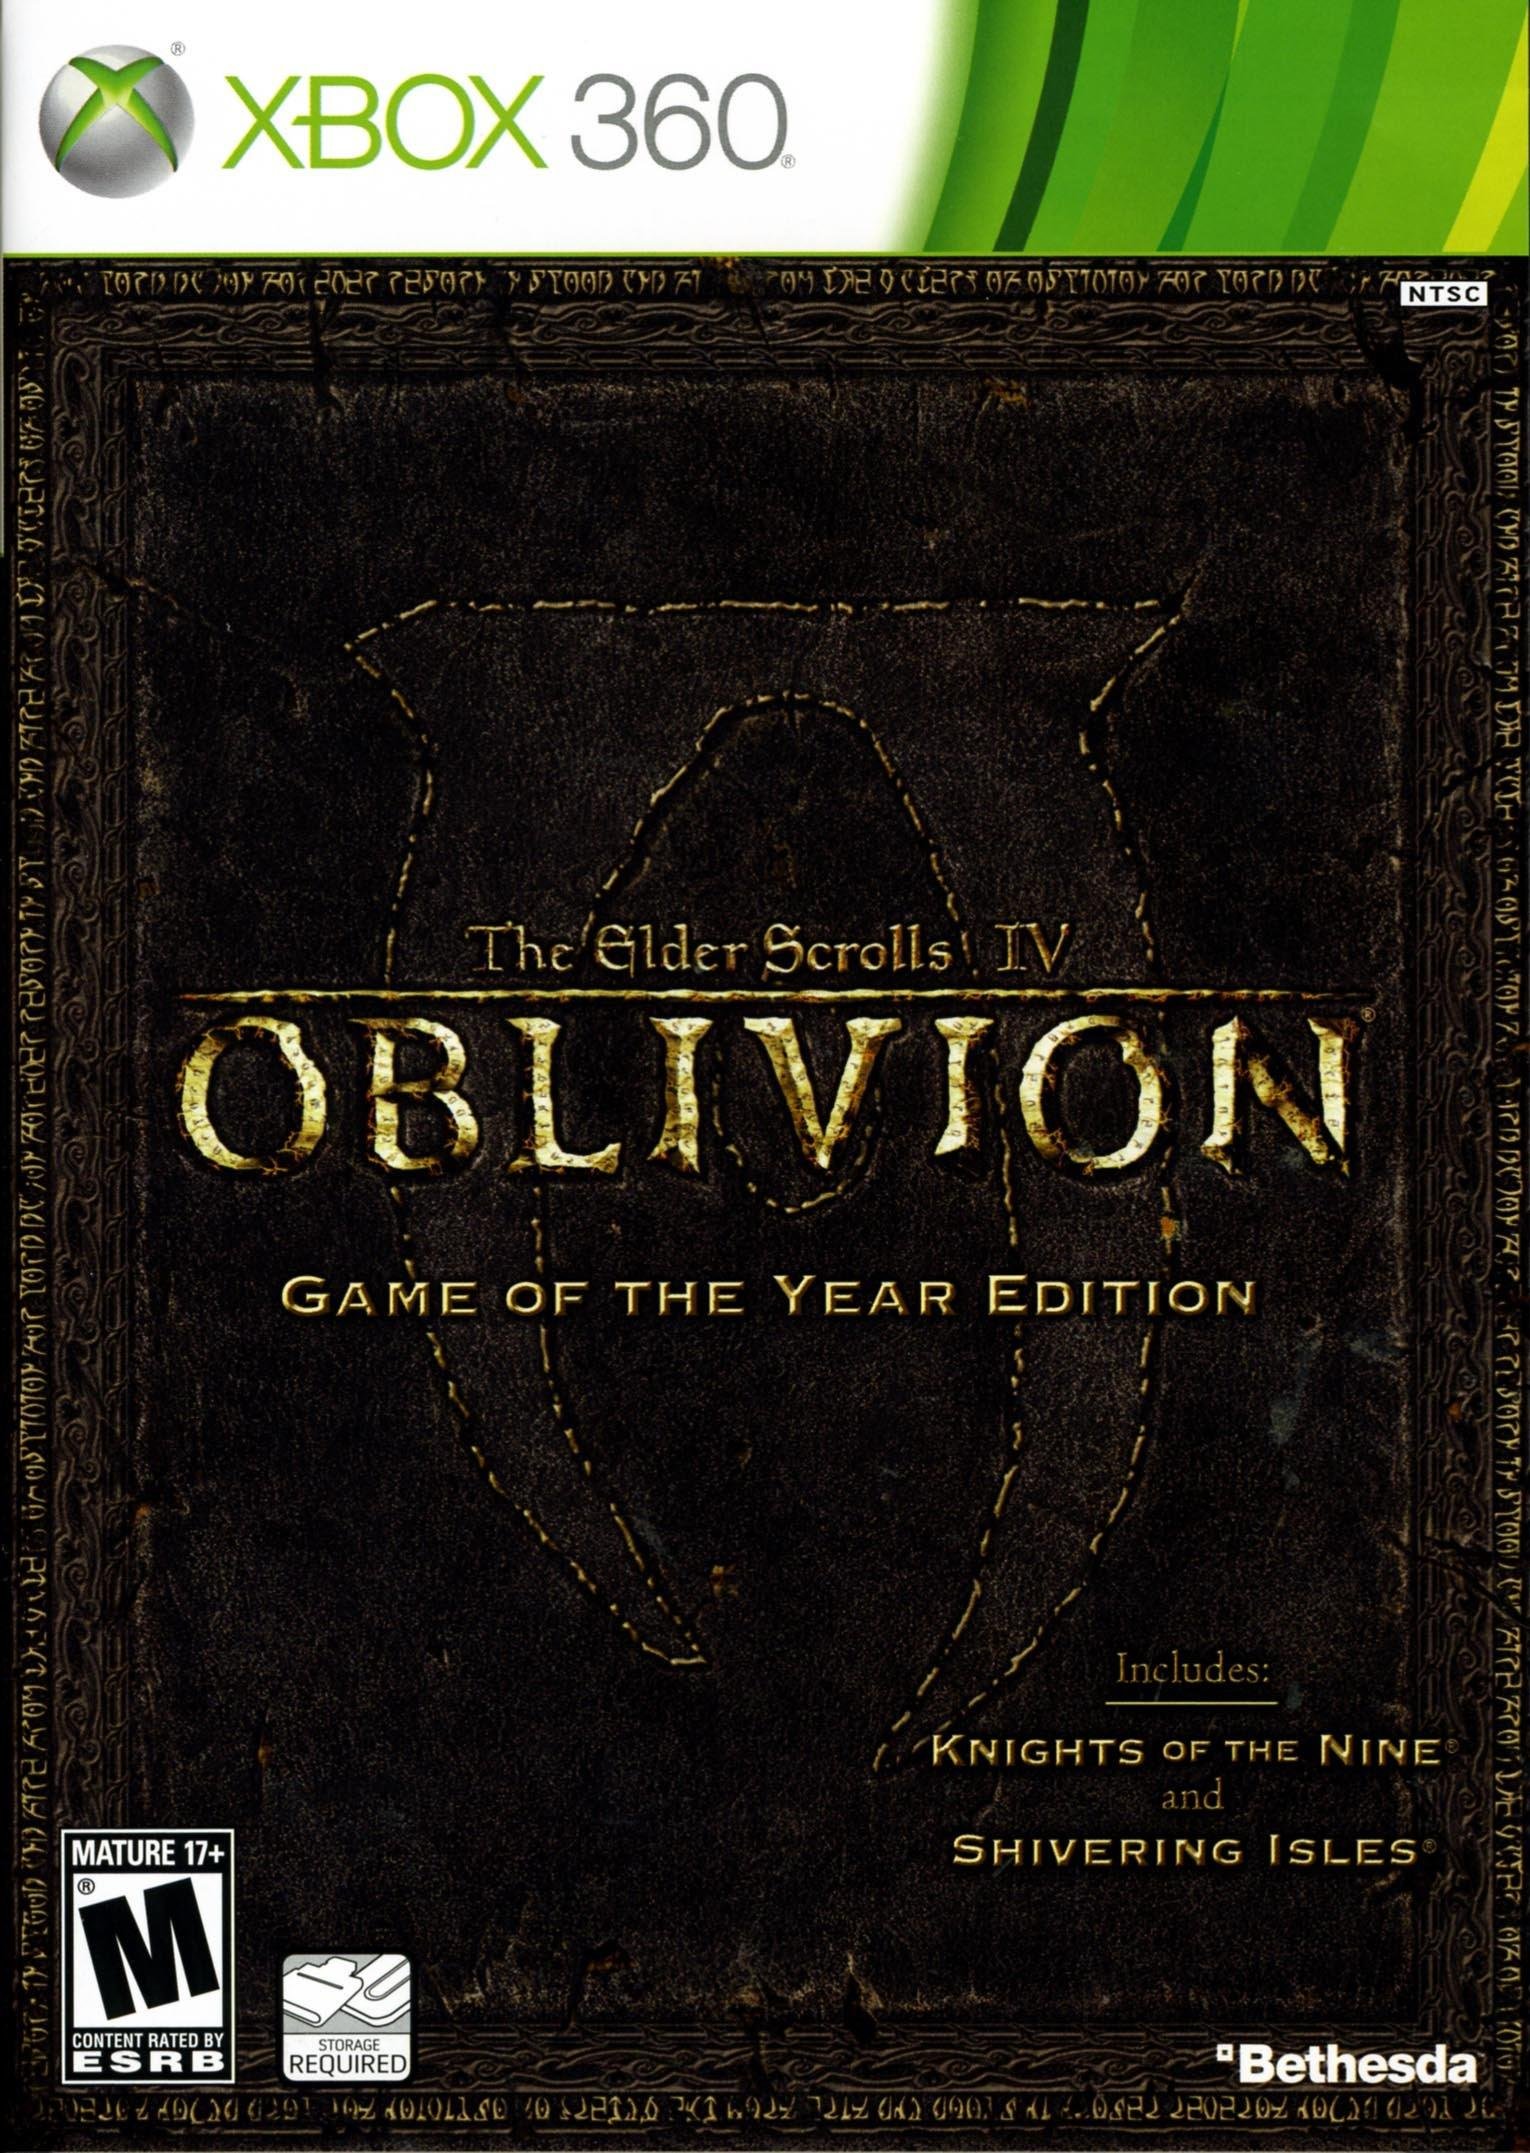 The Elder Scrolls IV Oblivion Game of the Year Edition | Xbox 360 | GameStop